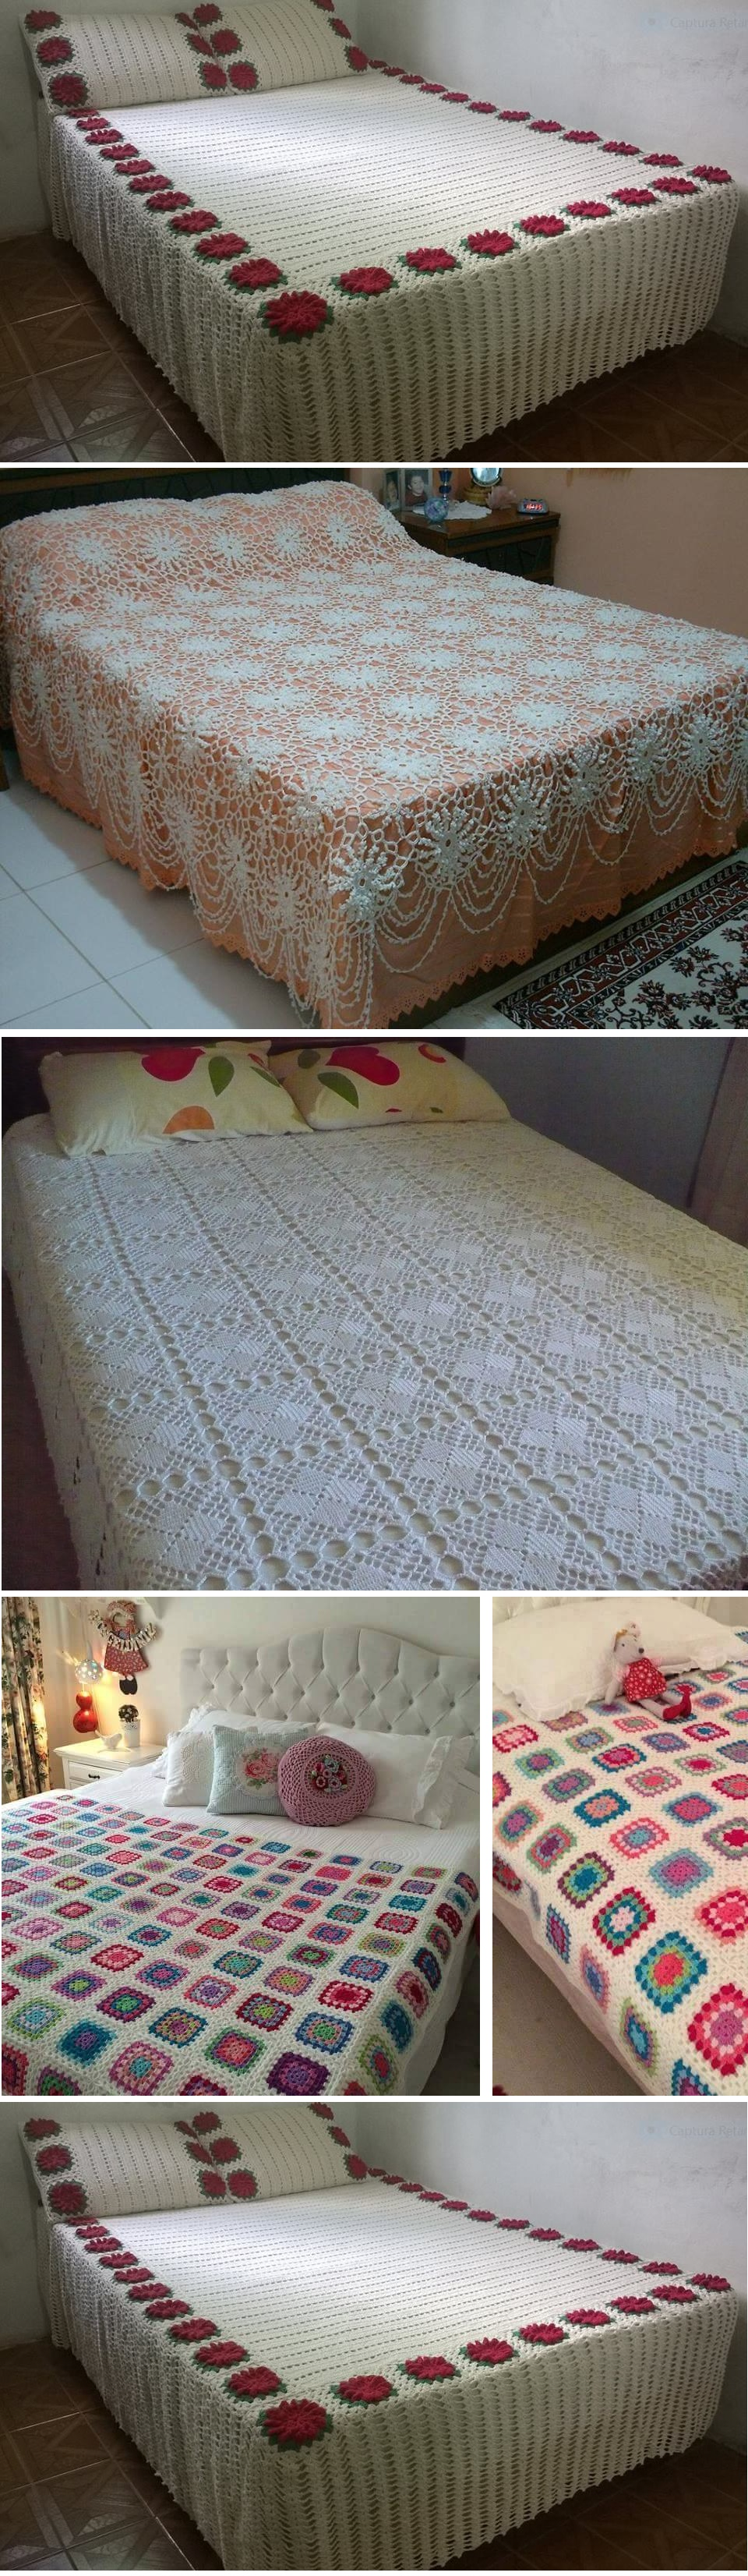 25+ Blanket Ideas